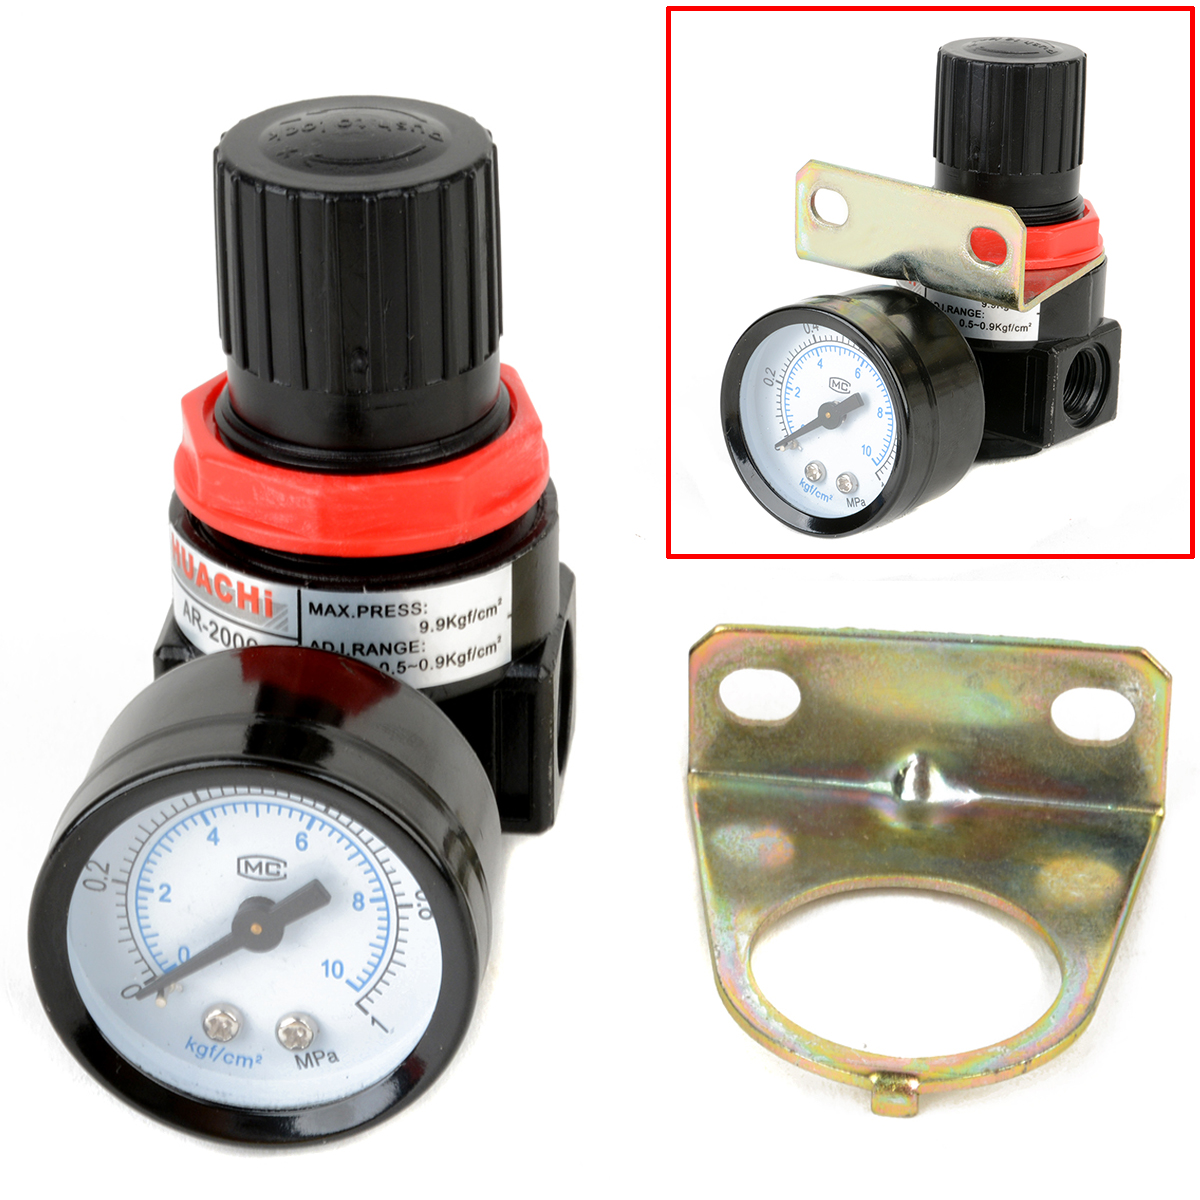 1pc AR2000 Compressor Air Control Pressure Relief Reducing Regulator Regulating Valve With Gauge Mayitr Pneumatic Parts ar2000 1 4 pneumatic air source treatment air control compressor pressure relief regulating regulator valve with pressure gauge